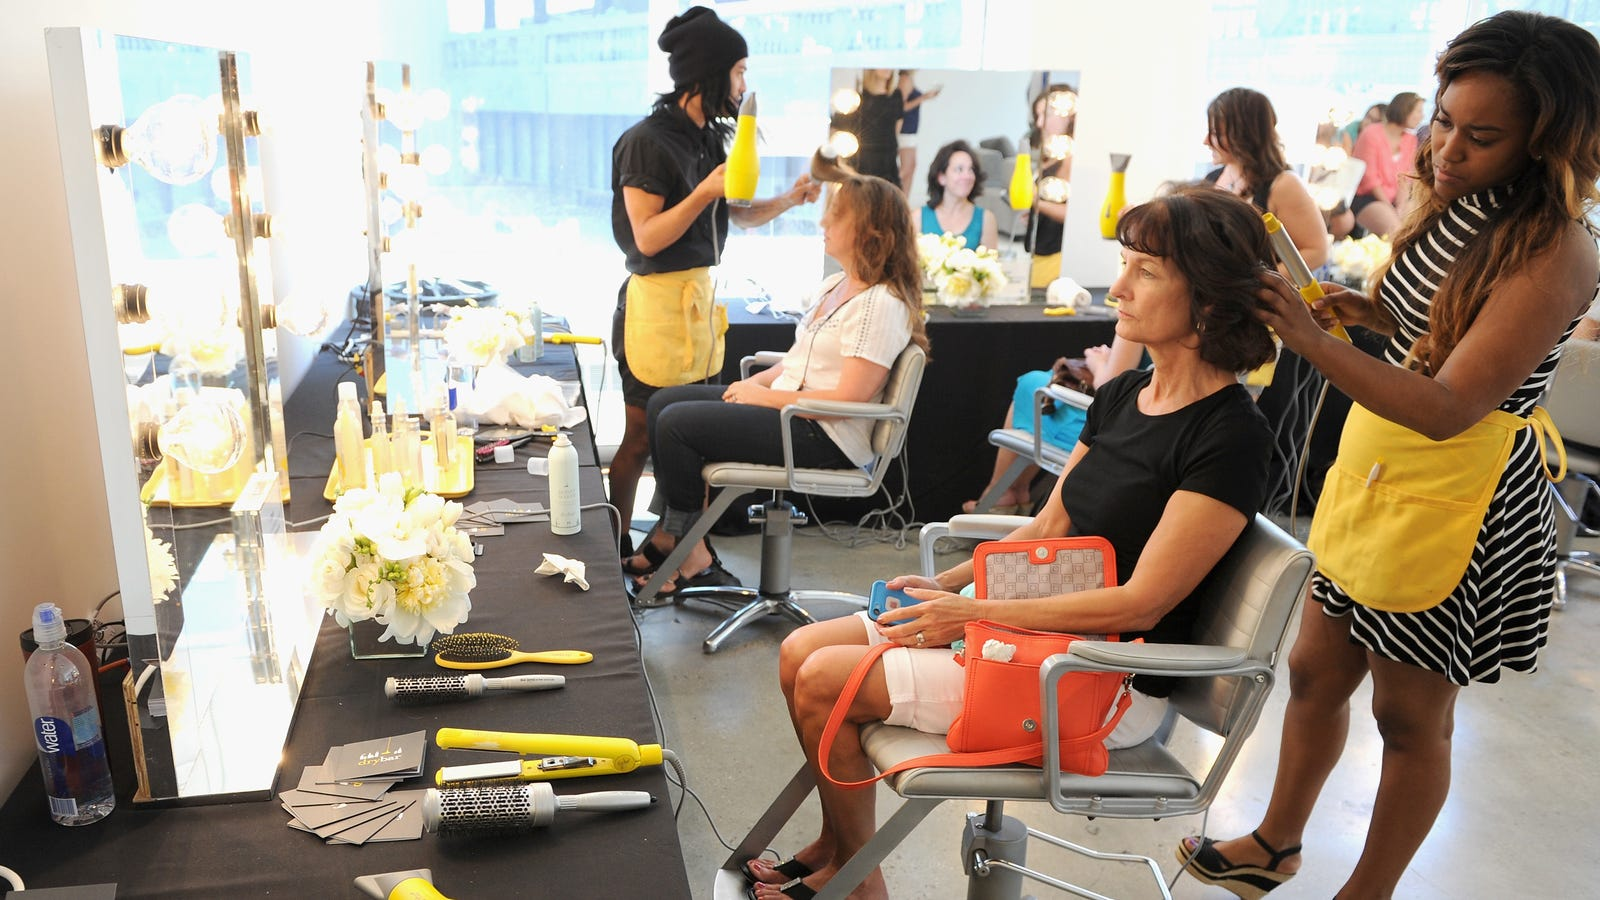 kujtao59xropdredpnxk - Beauty Parlor Are Still Too Sacred for the Tech World to Take Over